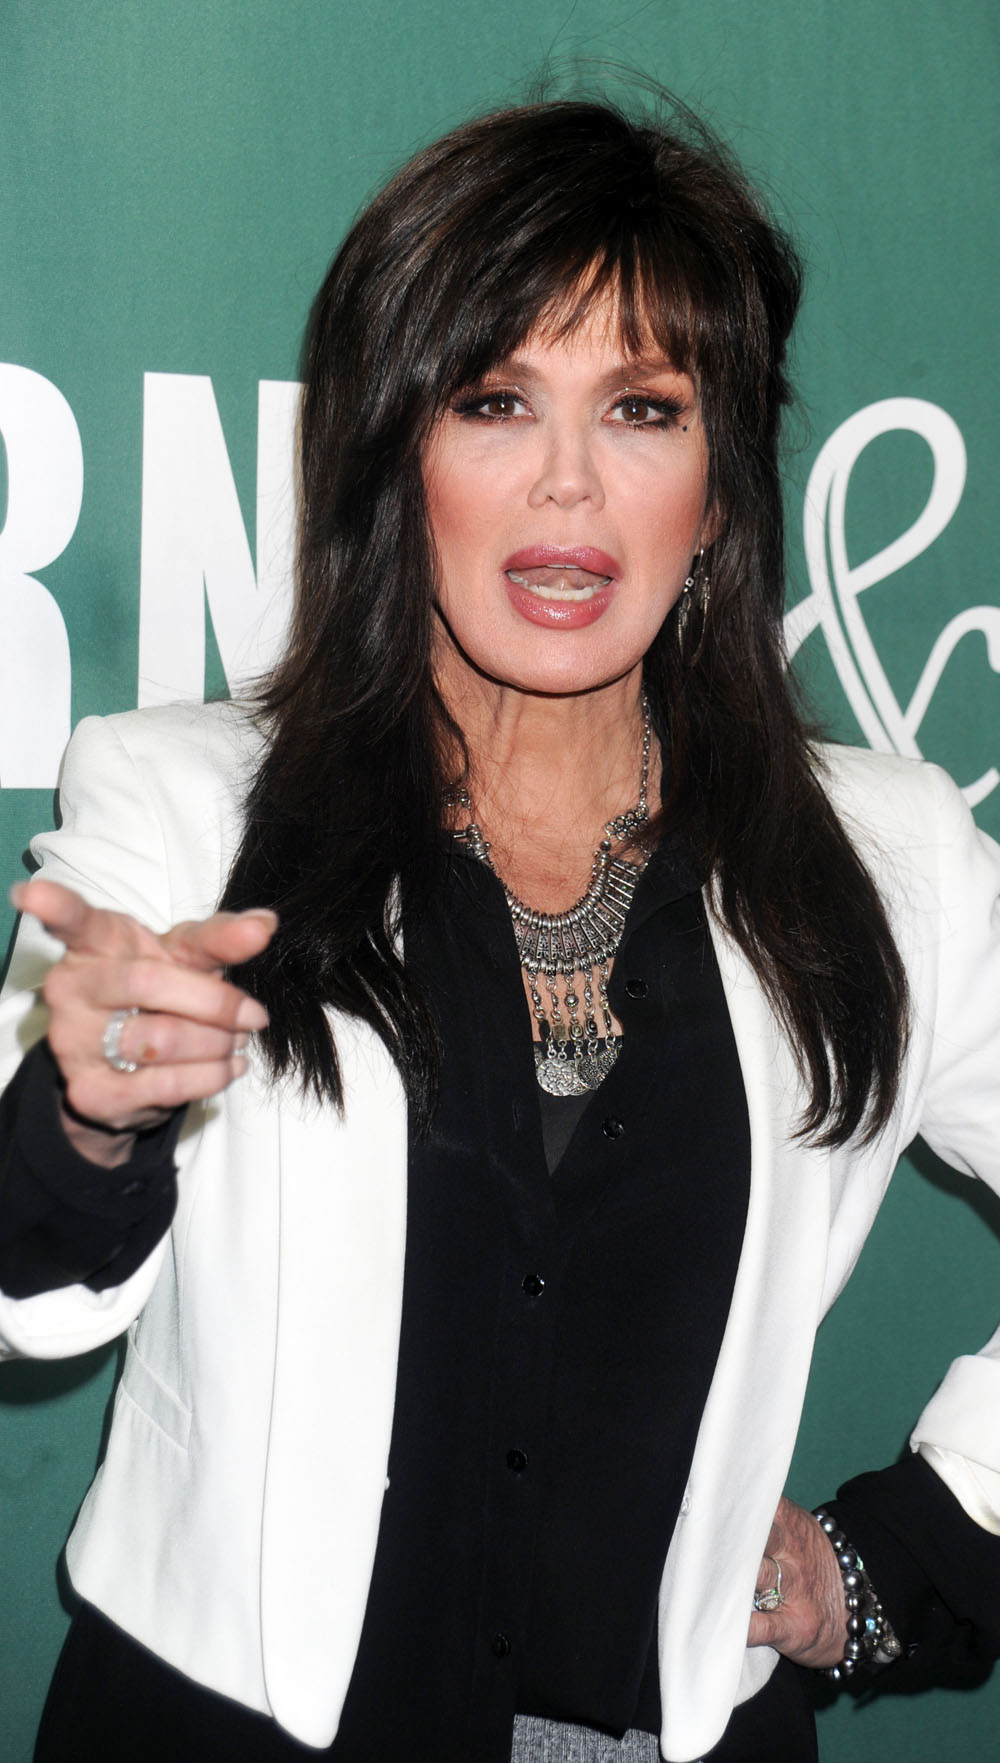 Miraculous Cele Bitchy Marie Osmond On Oprahs Ww Gig Counting Points Hairstyles For Men Maxibearus